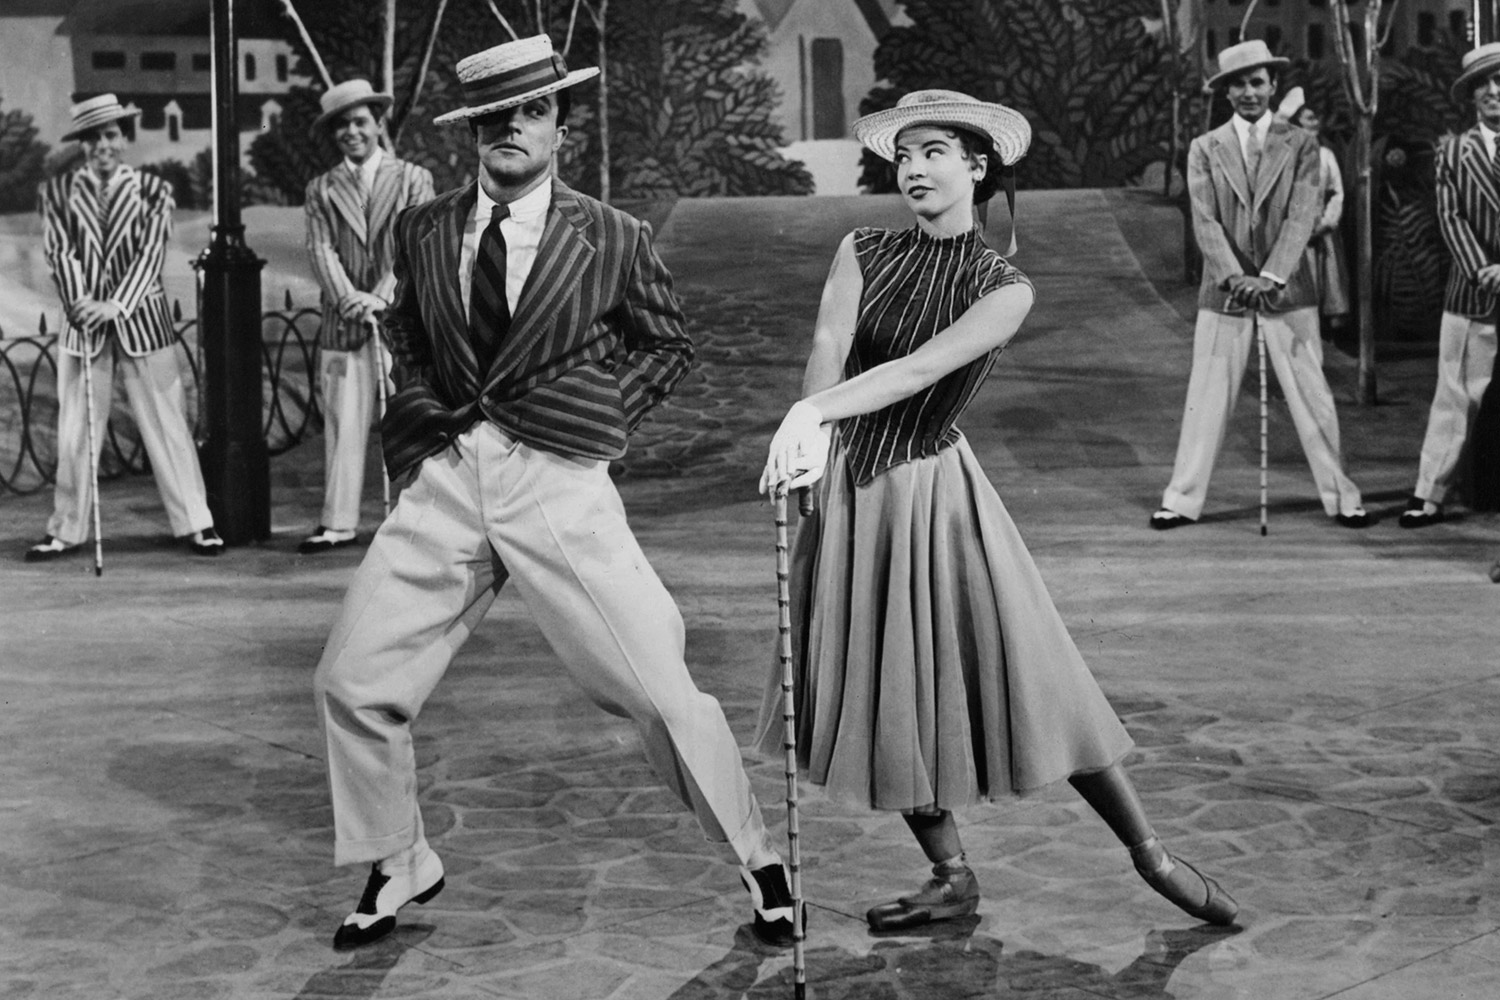 Gene Kelly And Leslie Caron In 'An American In Paris'